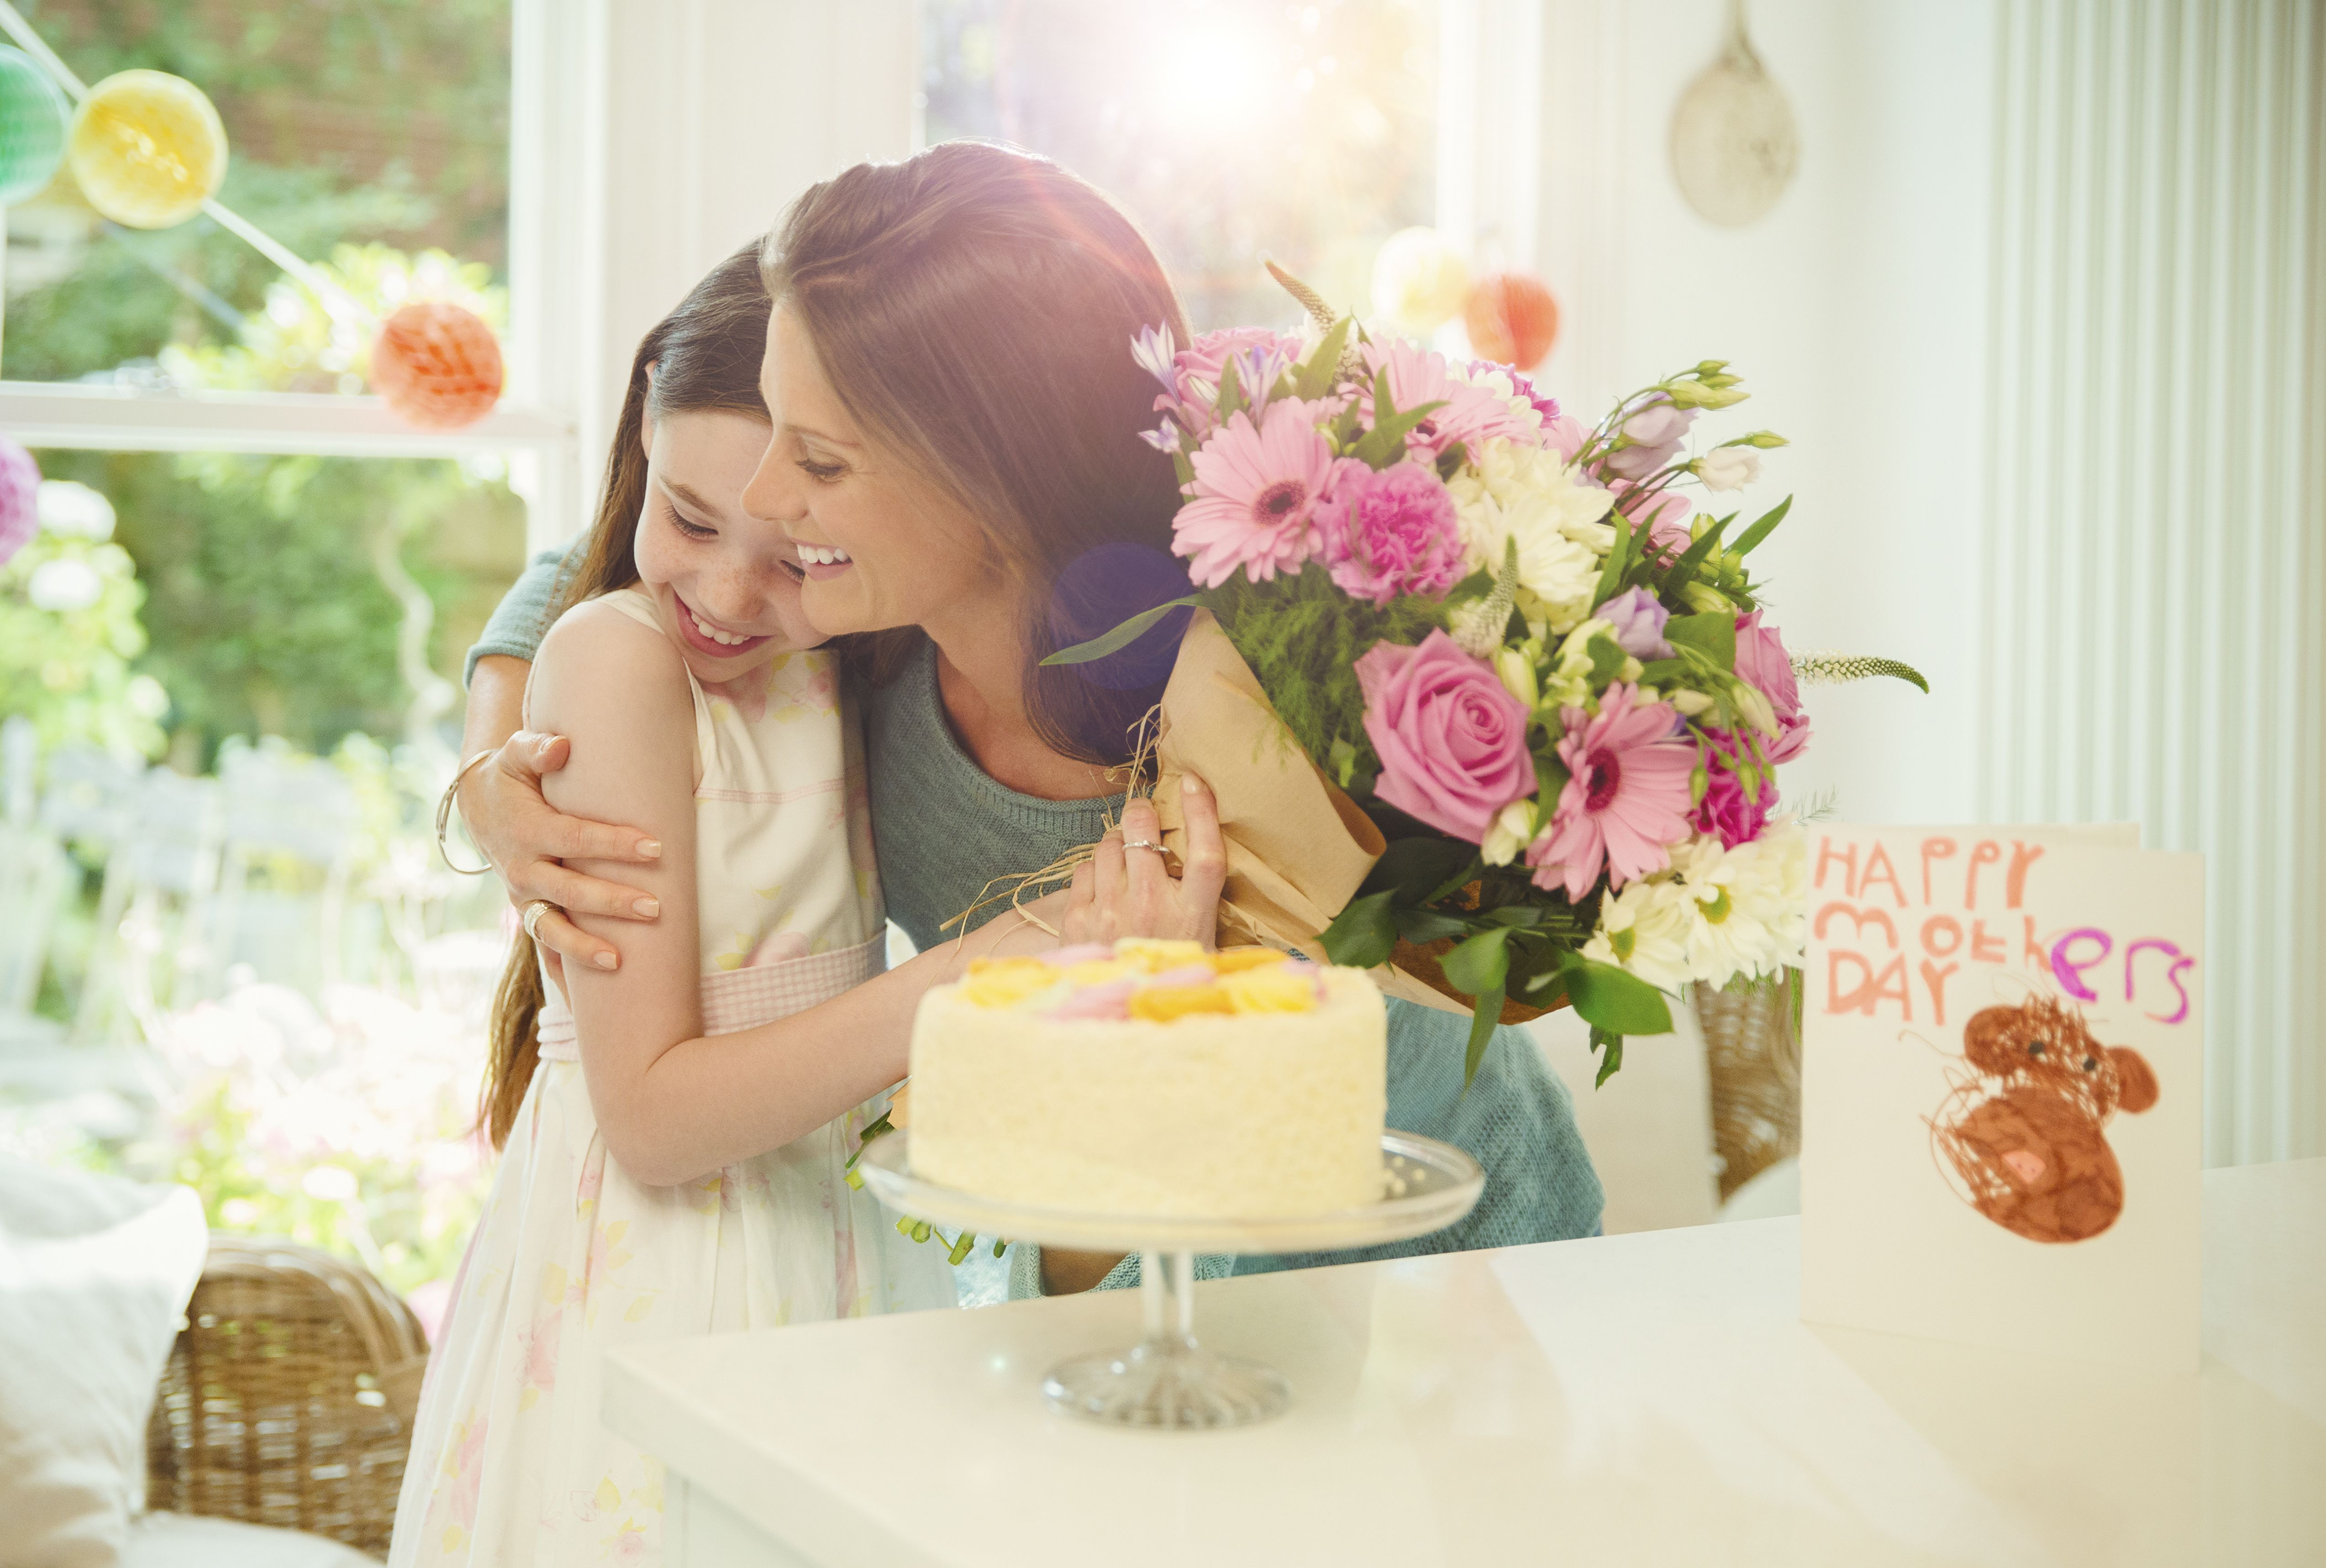 9 Places to Find Happy Mothers Day Poems